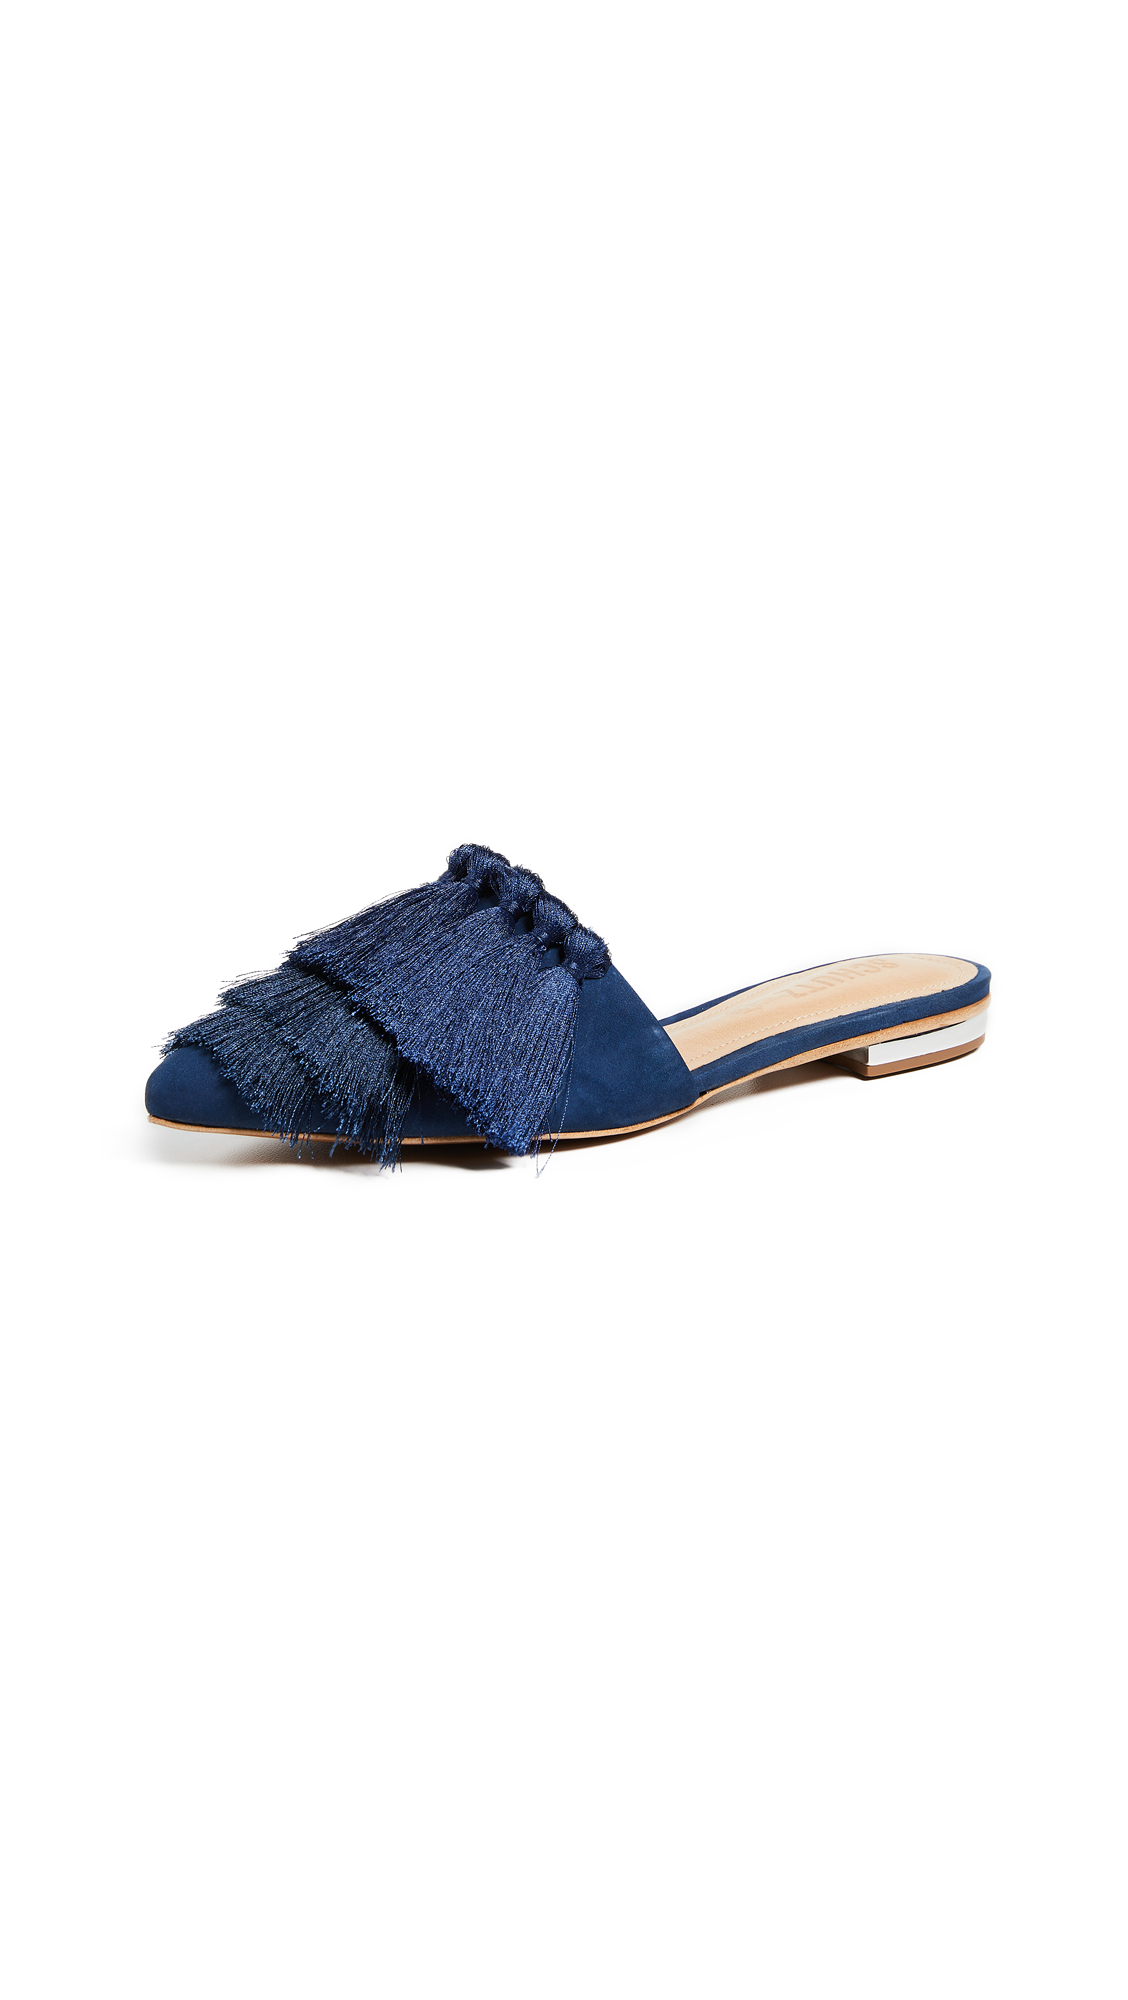 Schutz Lale Tassel Point Toe Flats - Dress Blue